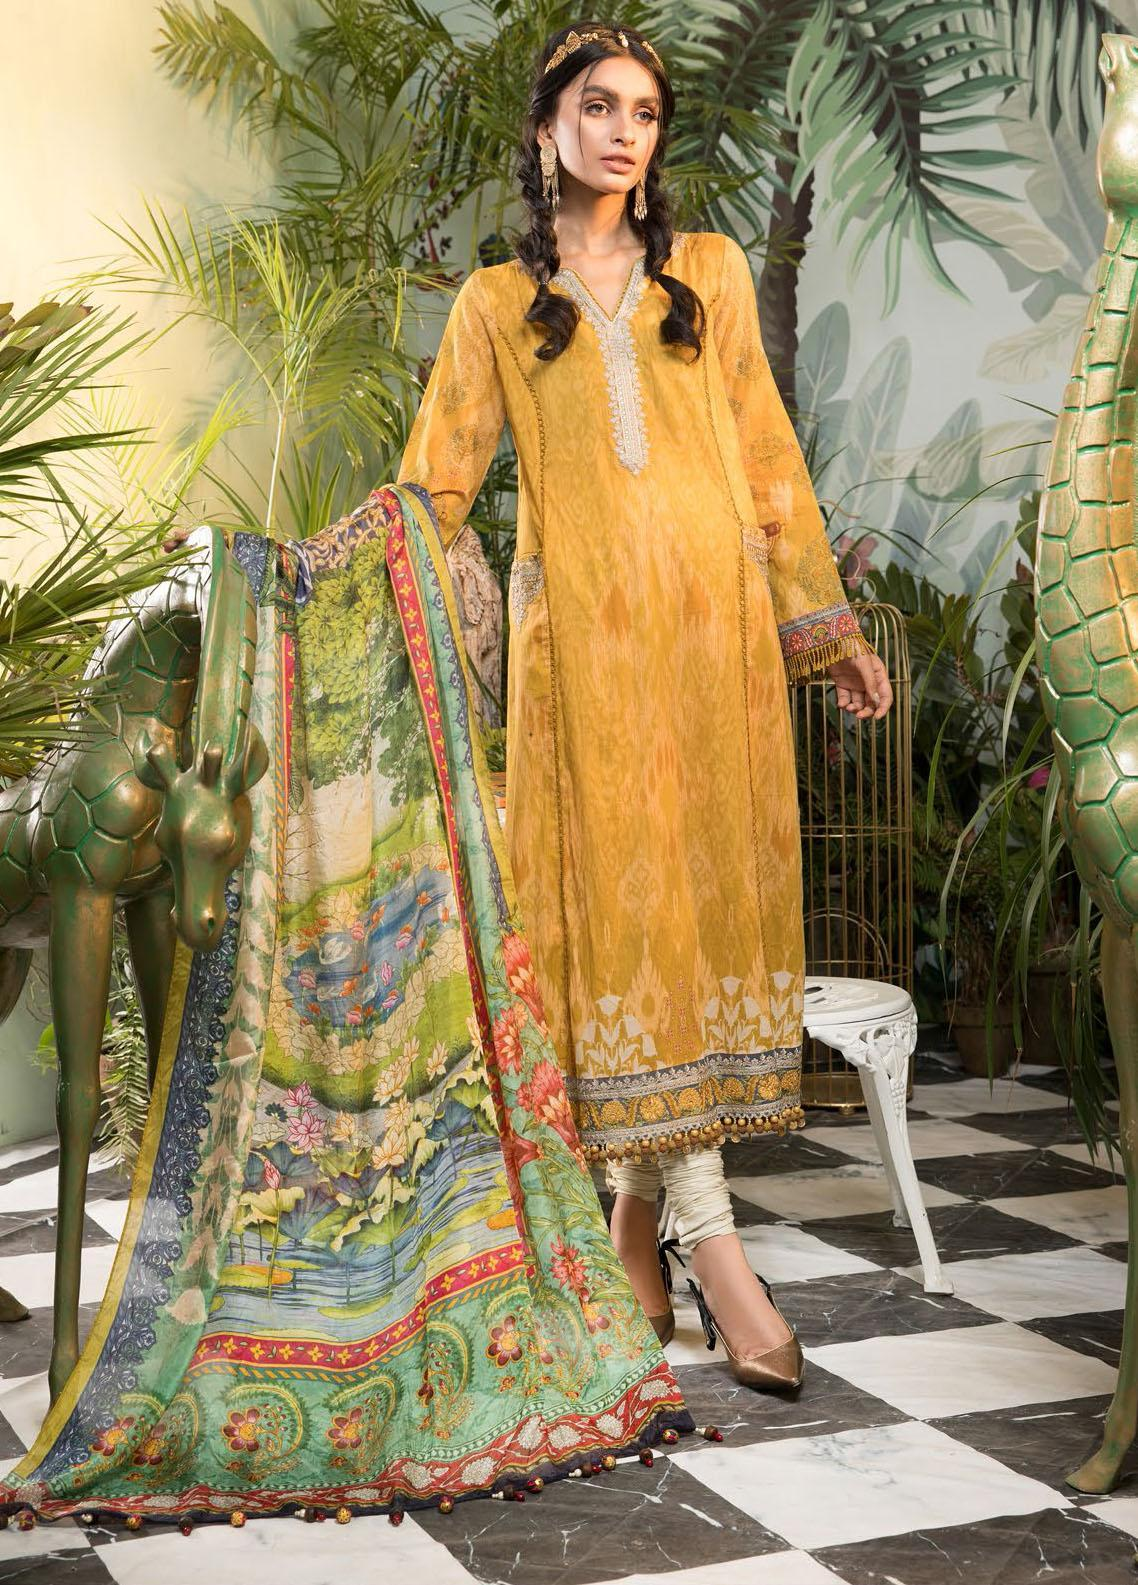 Mprints By Maria B Printed Lawn Suits Unstitched 3 Piece MB21-MP2 1104-A - Summer Collection